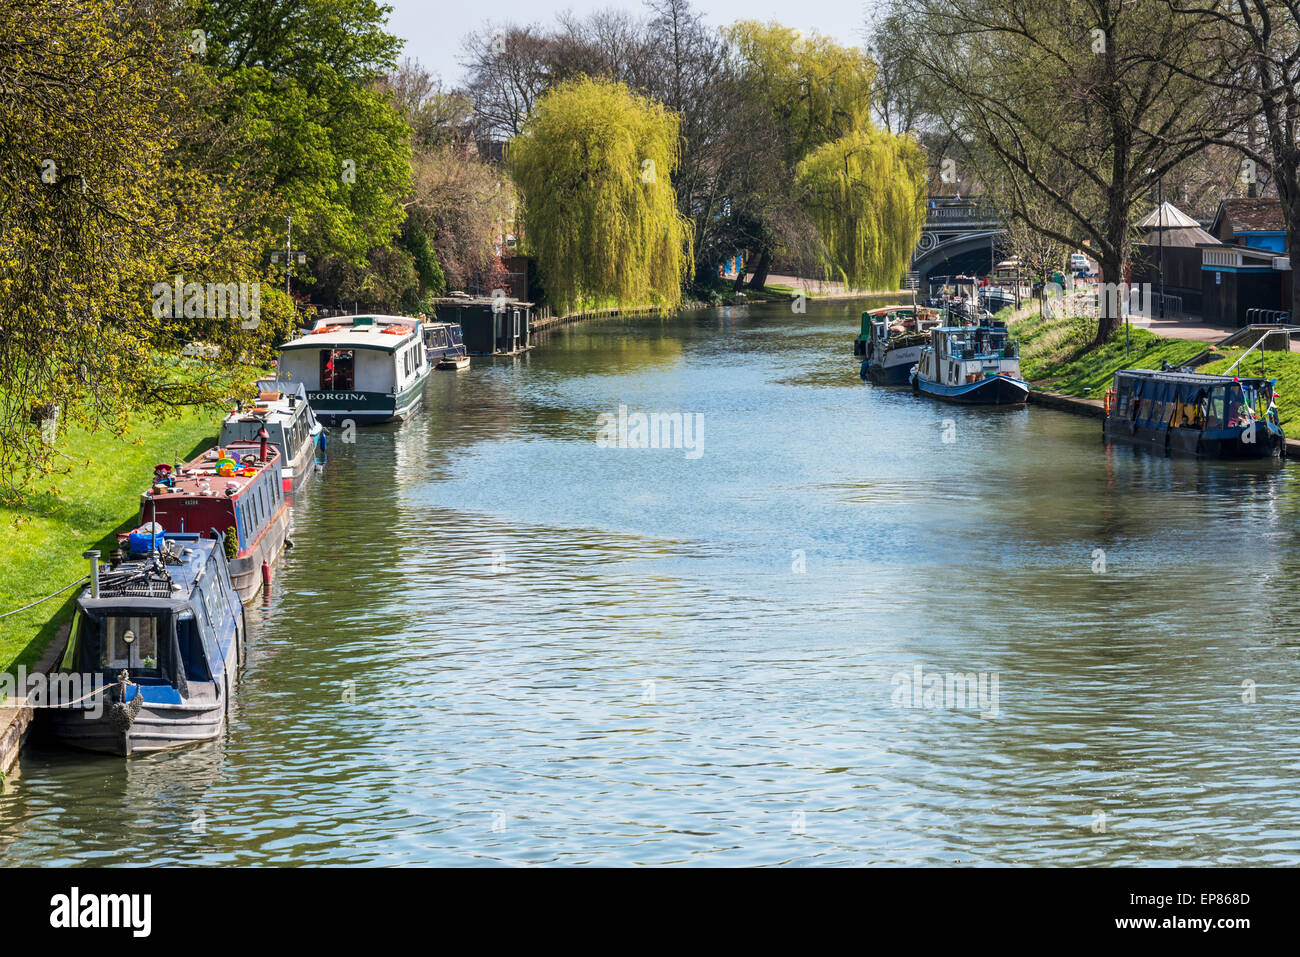 River boats and barges on the River Cam in Cambridge alongside Midsummer Common - Stock Image